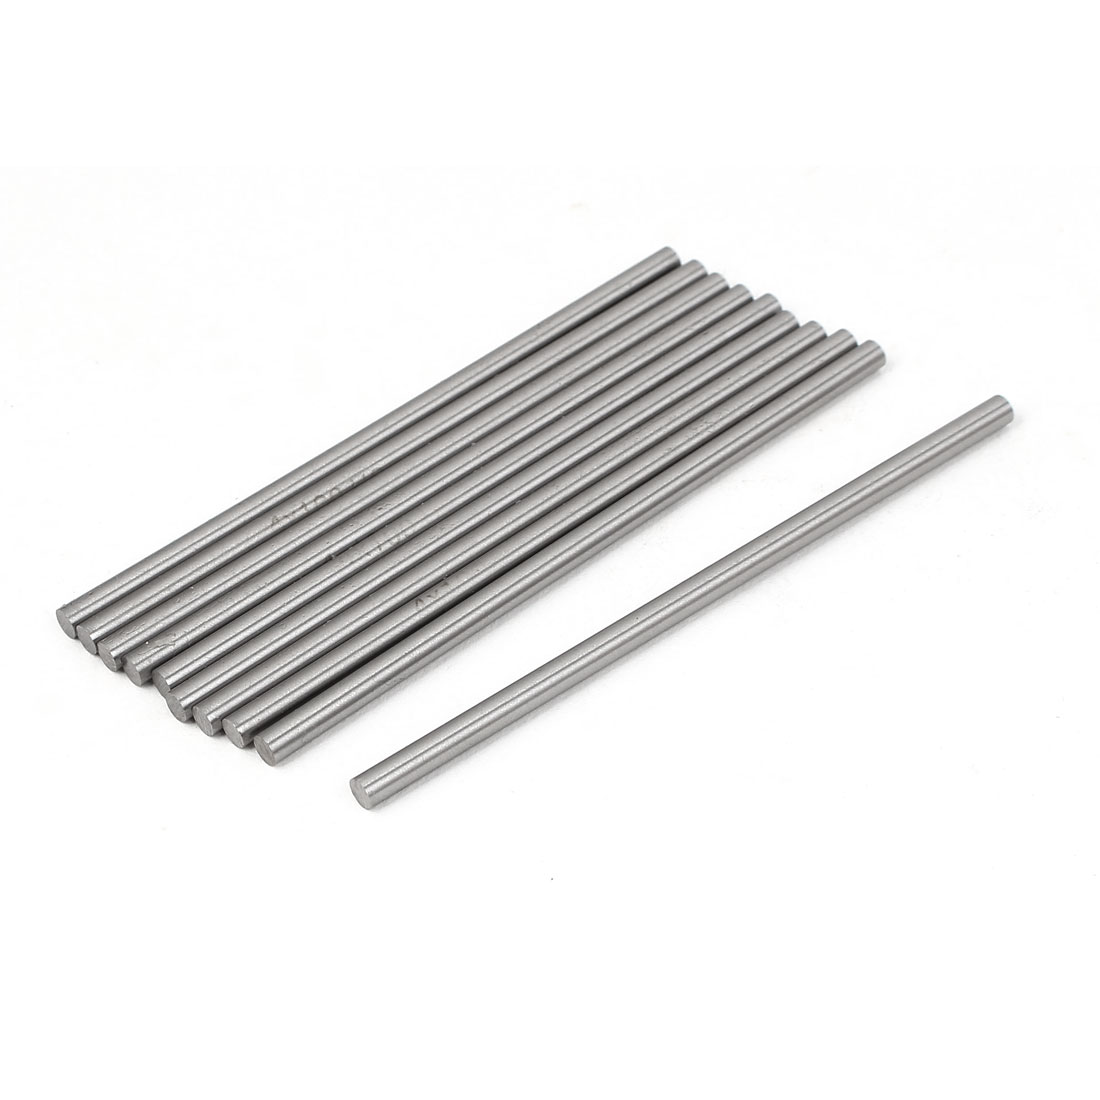 4mm x 100mm HSS Machine Boring Tool Solid Round Lathe Bar 10pcs